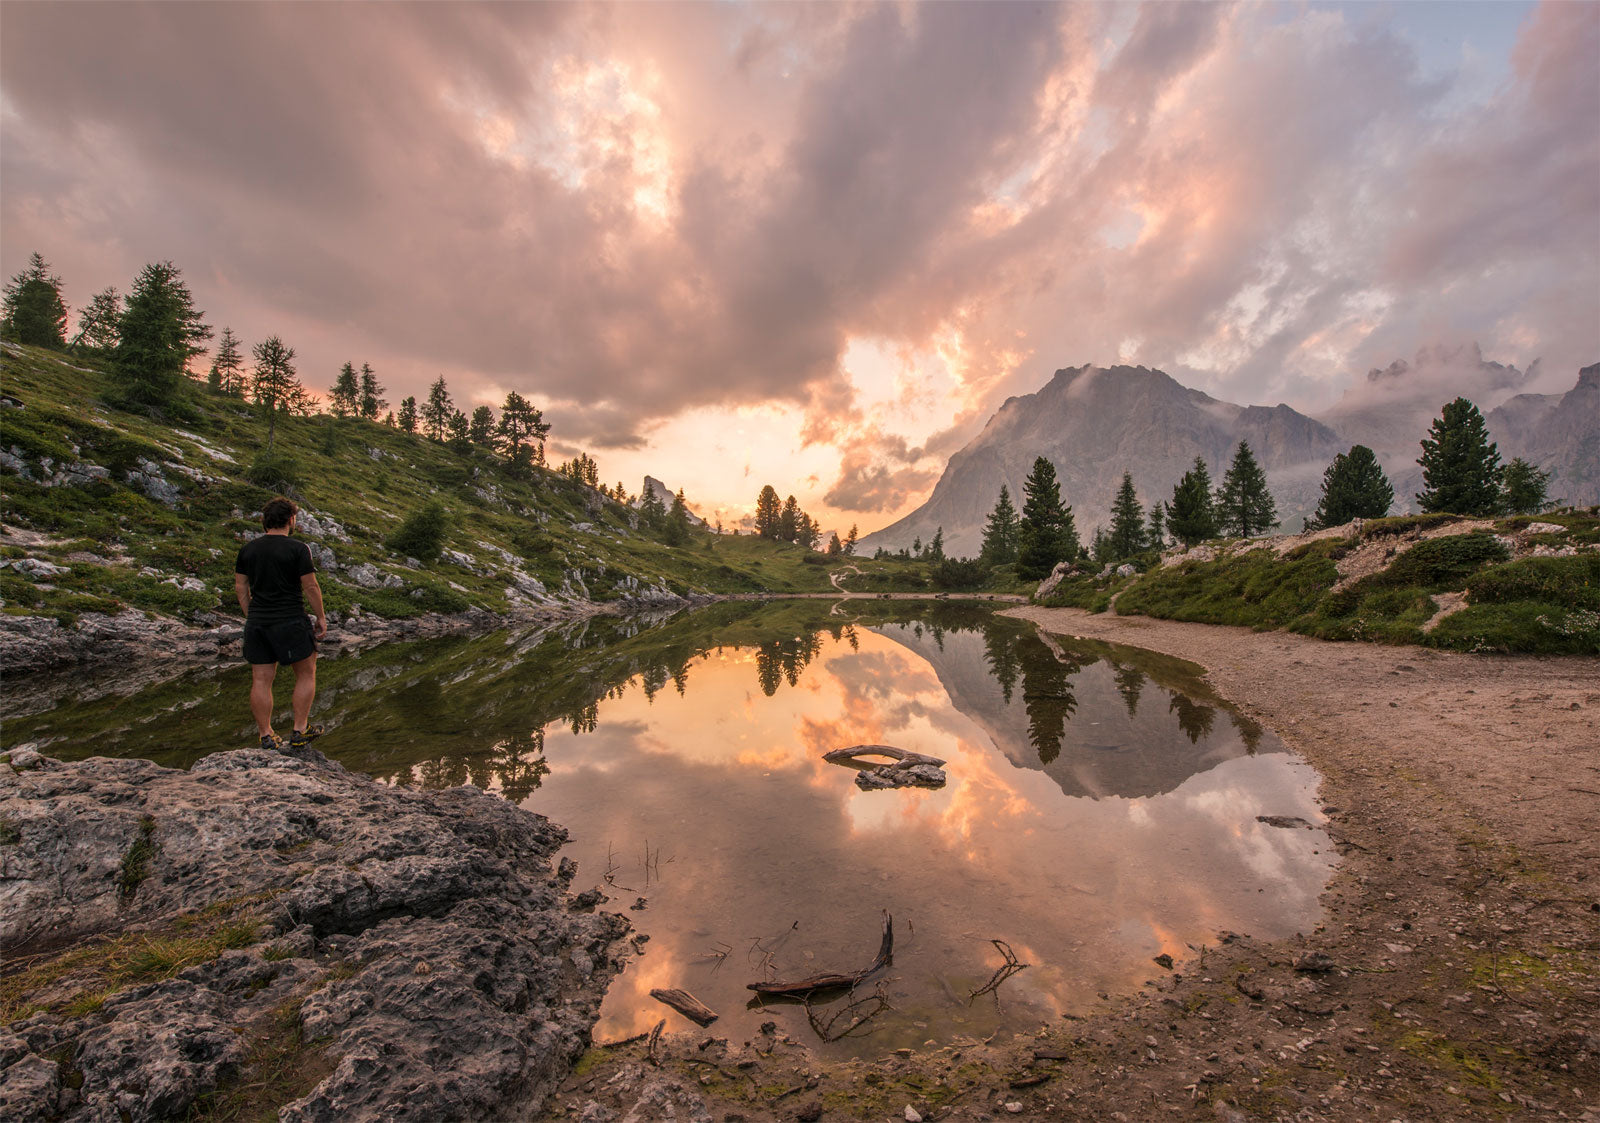 Get Inspired to Hike More with These Awesome Outdoor Quotes